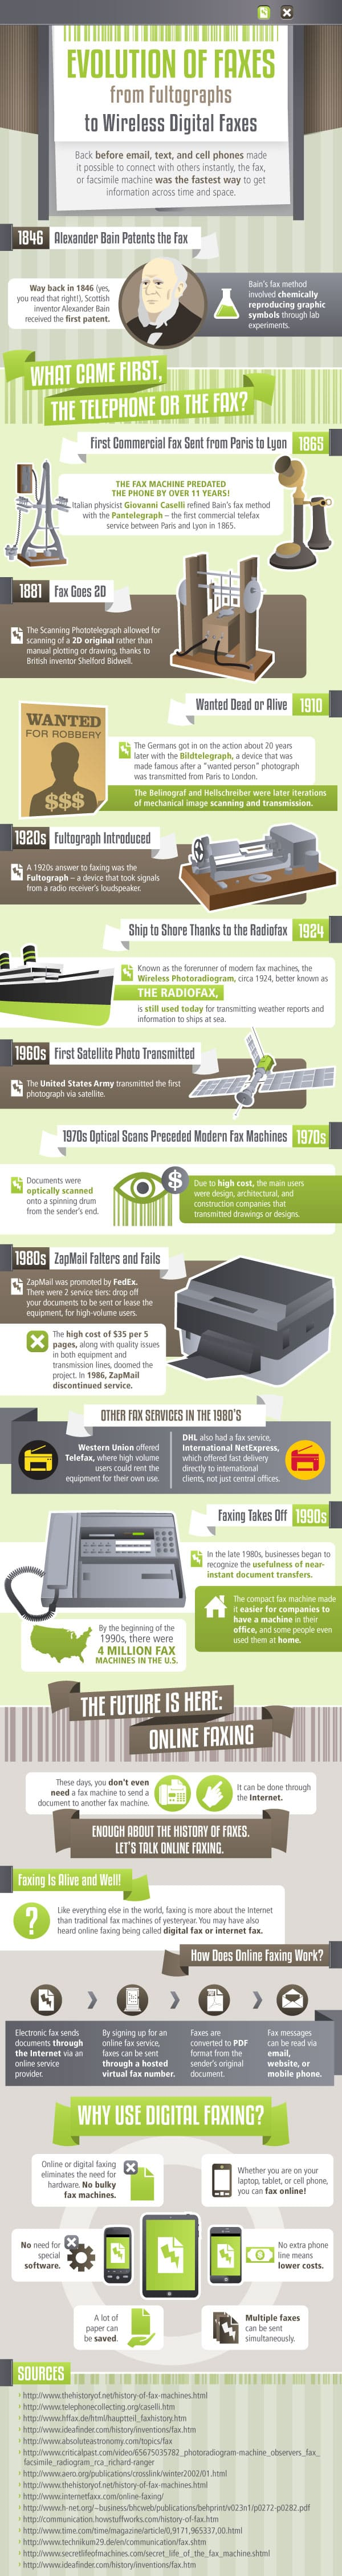 Evolution of Faxes infographic